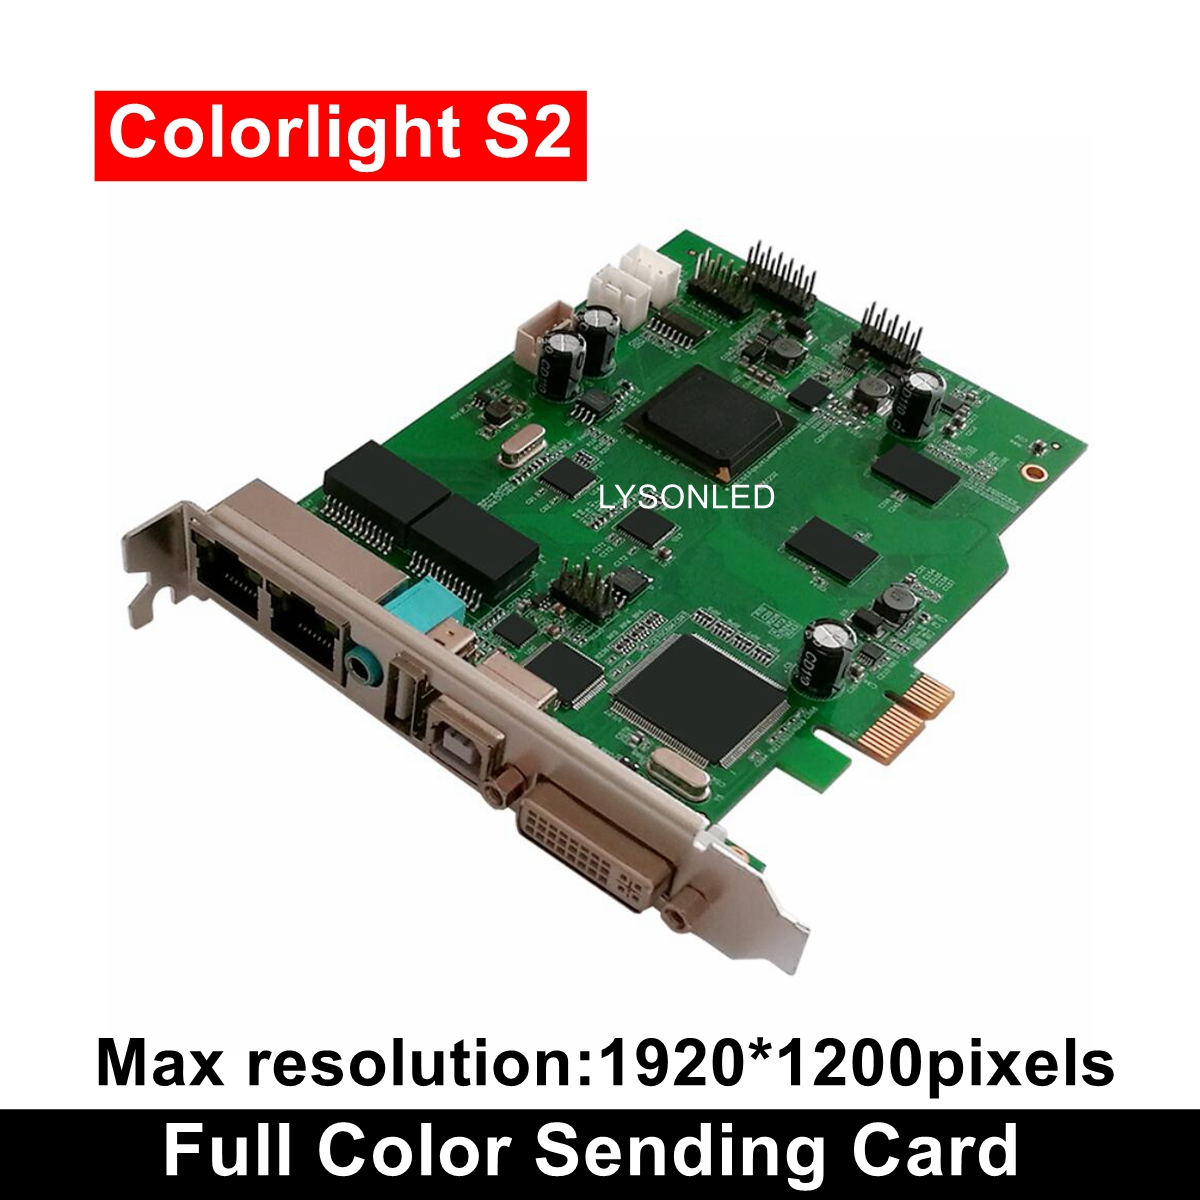 Colorlight S2 Sending Card,Full Color LED Video Display Synchronization S2 Sending Card(TS802 MSD300 5A-75B 5A-75E Hot Selling)